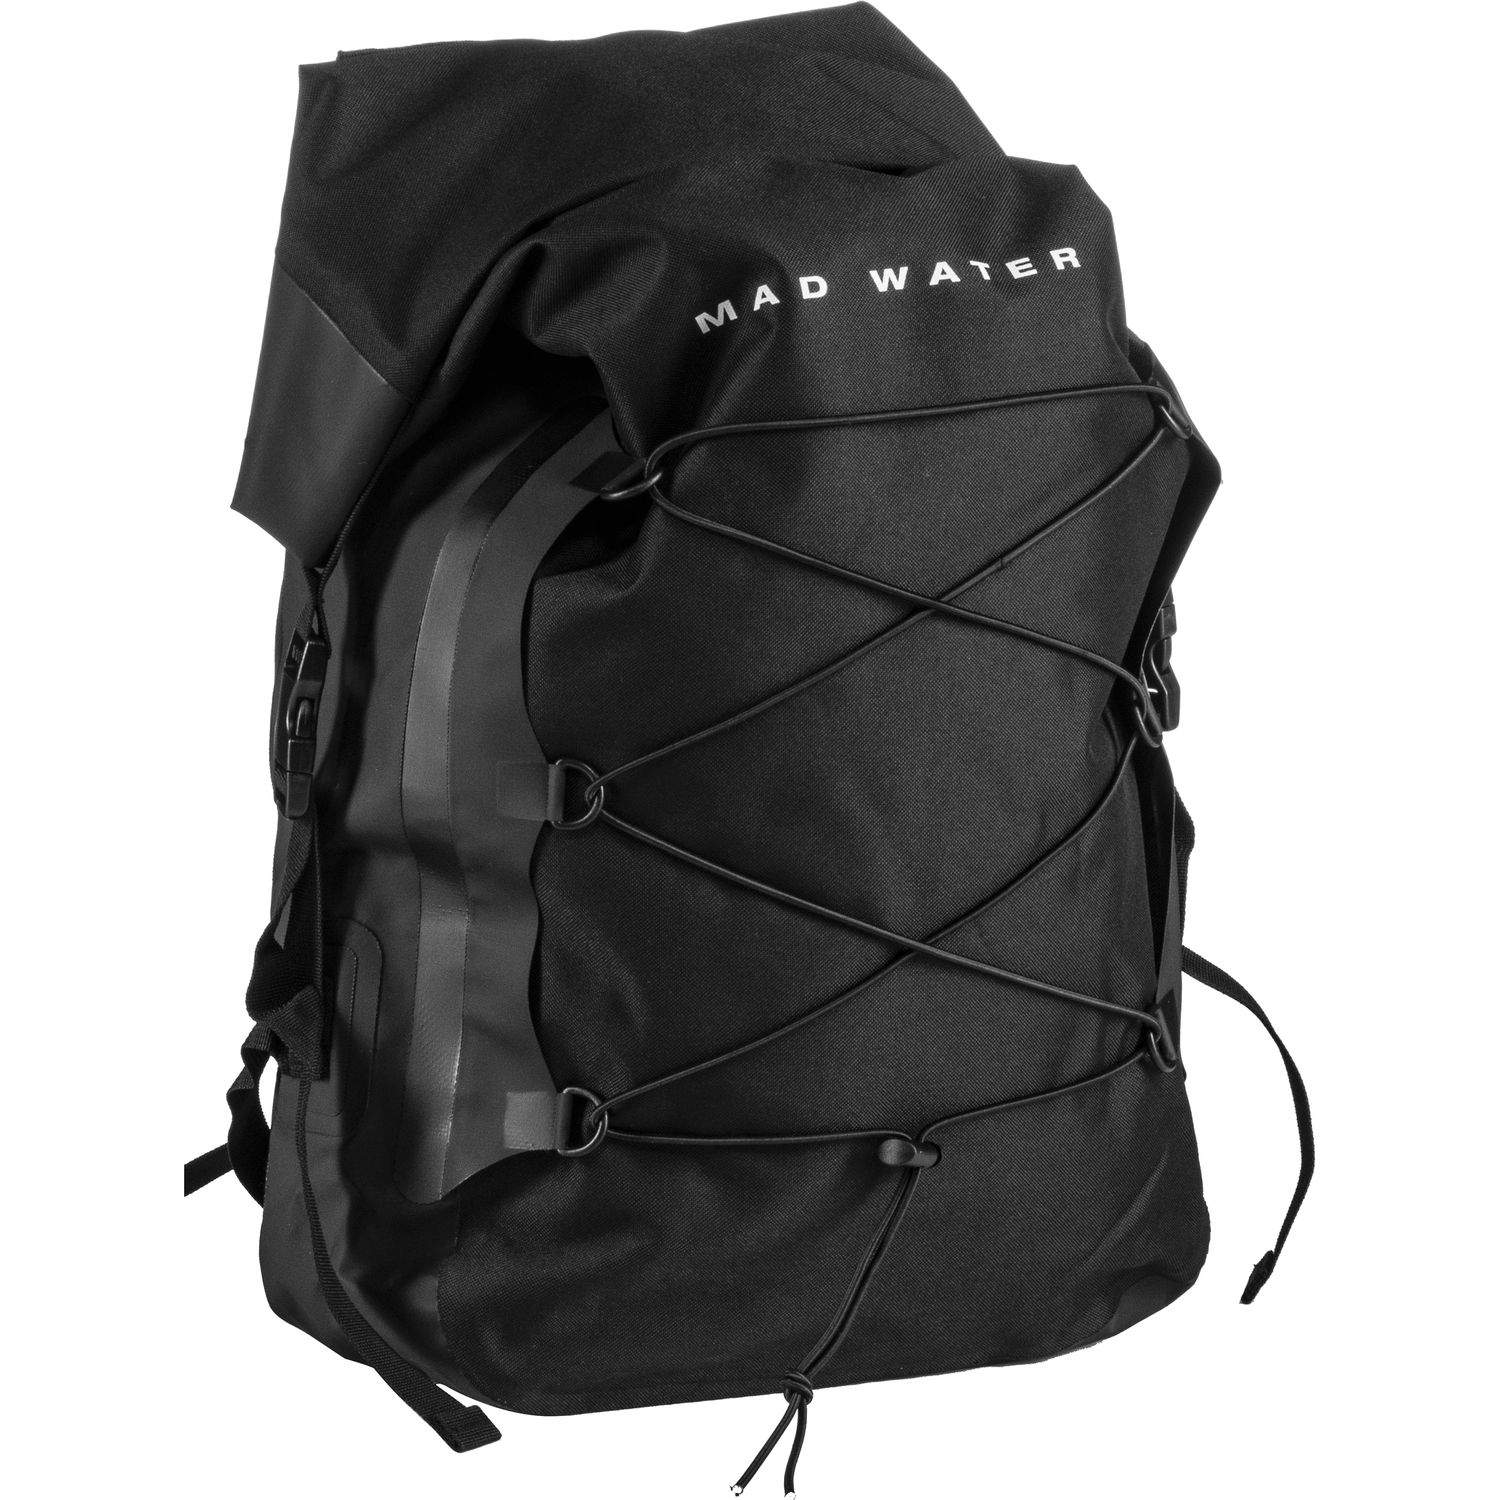 Mad Water Classic Roll-Top Waterproof Backpack M43100 B&H Photo